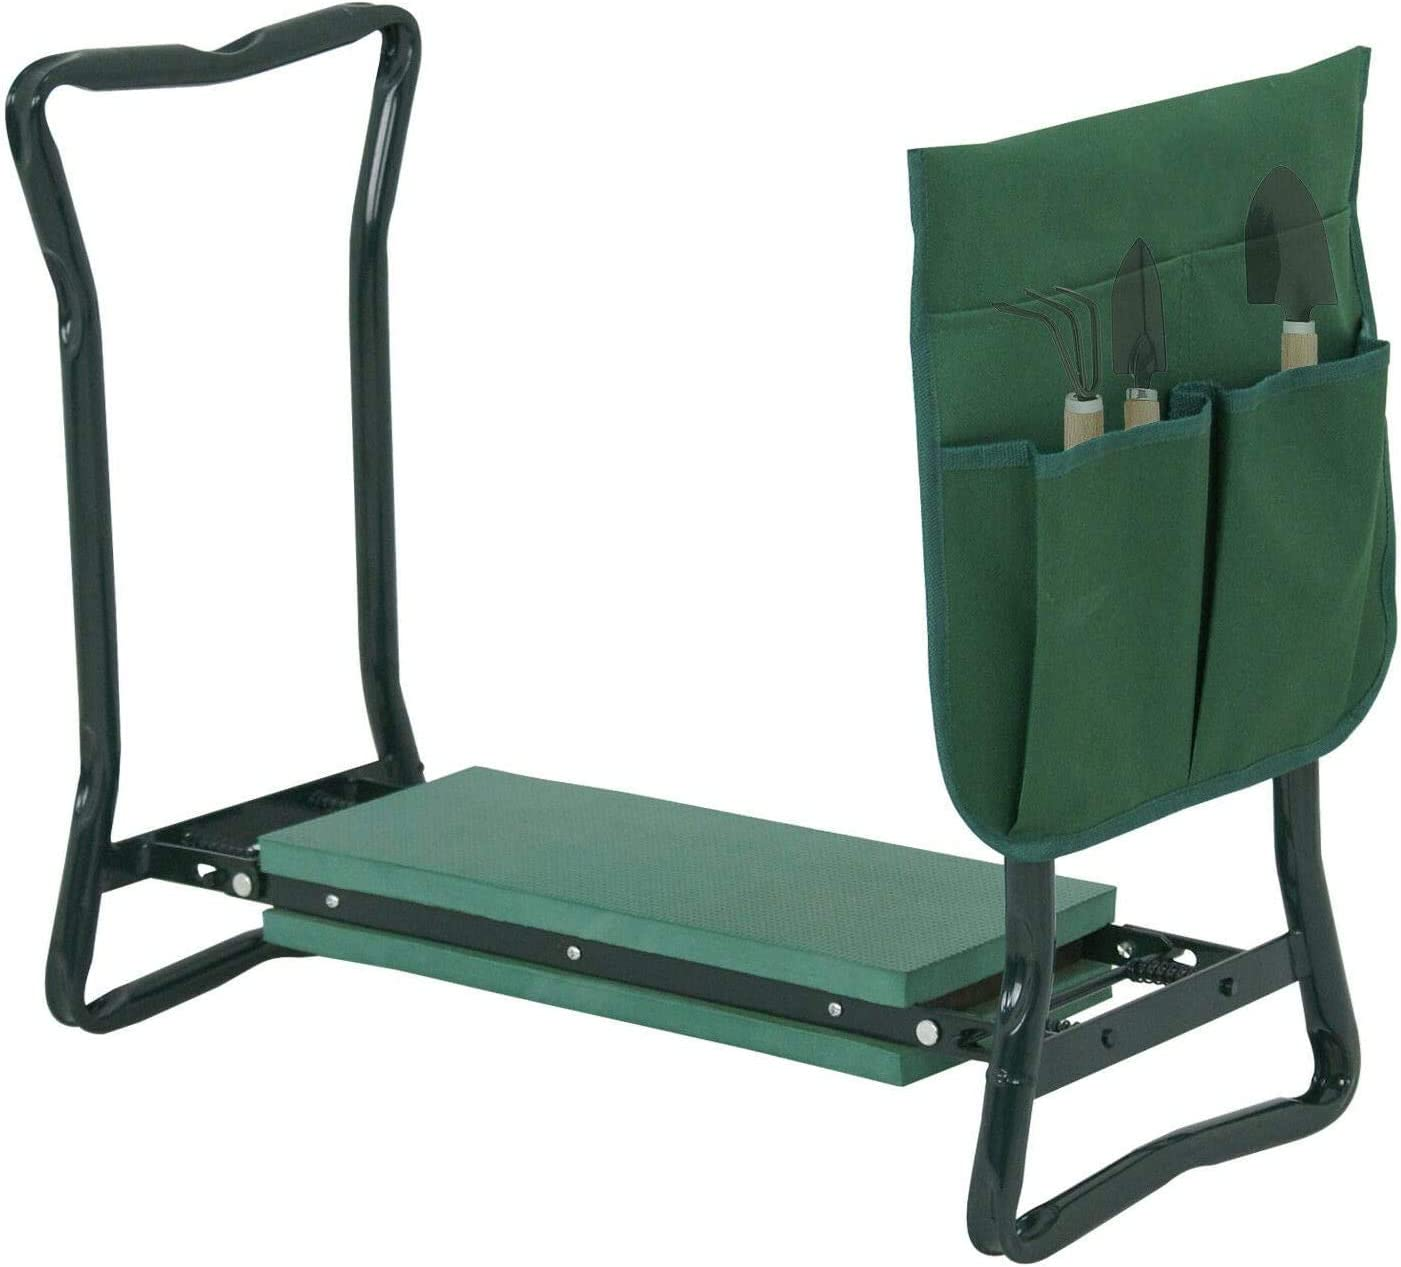 COLIBROX 24 inch 250-lbs Foldable Kneeler Garden Bench Stool Soft Cushion Seat Pad Kneeling with Tool Pouch